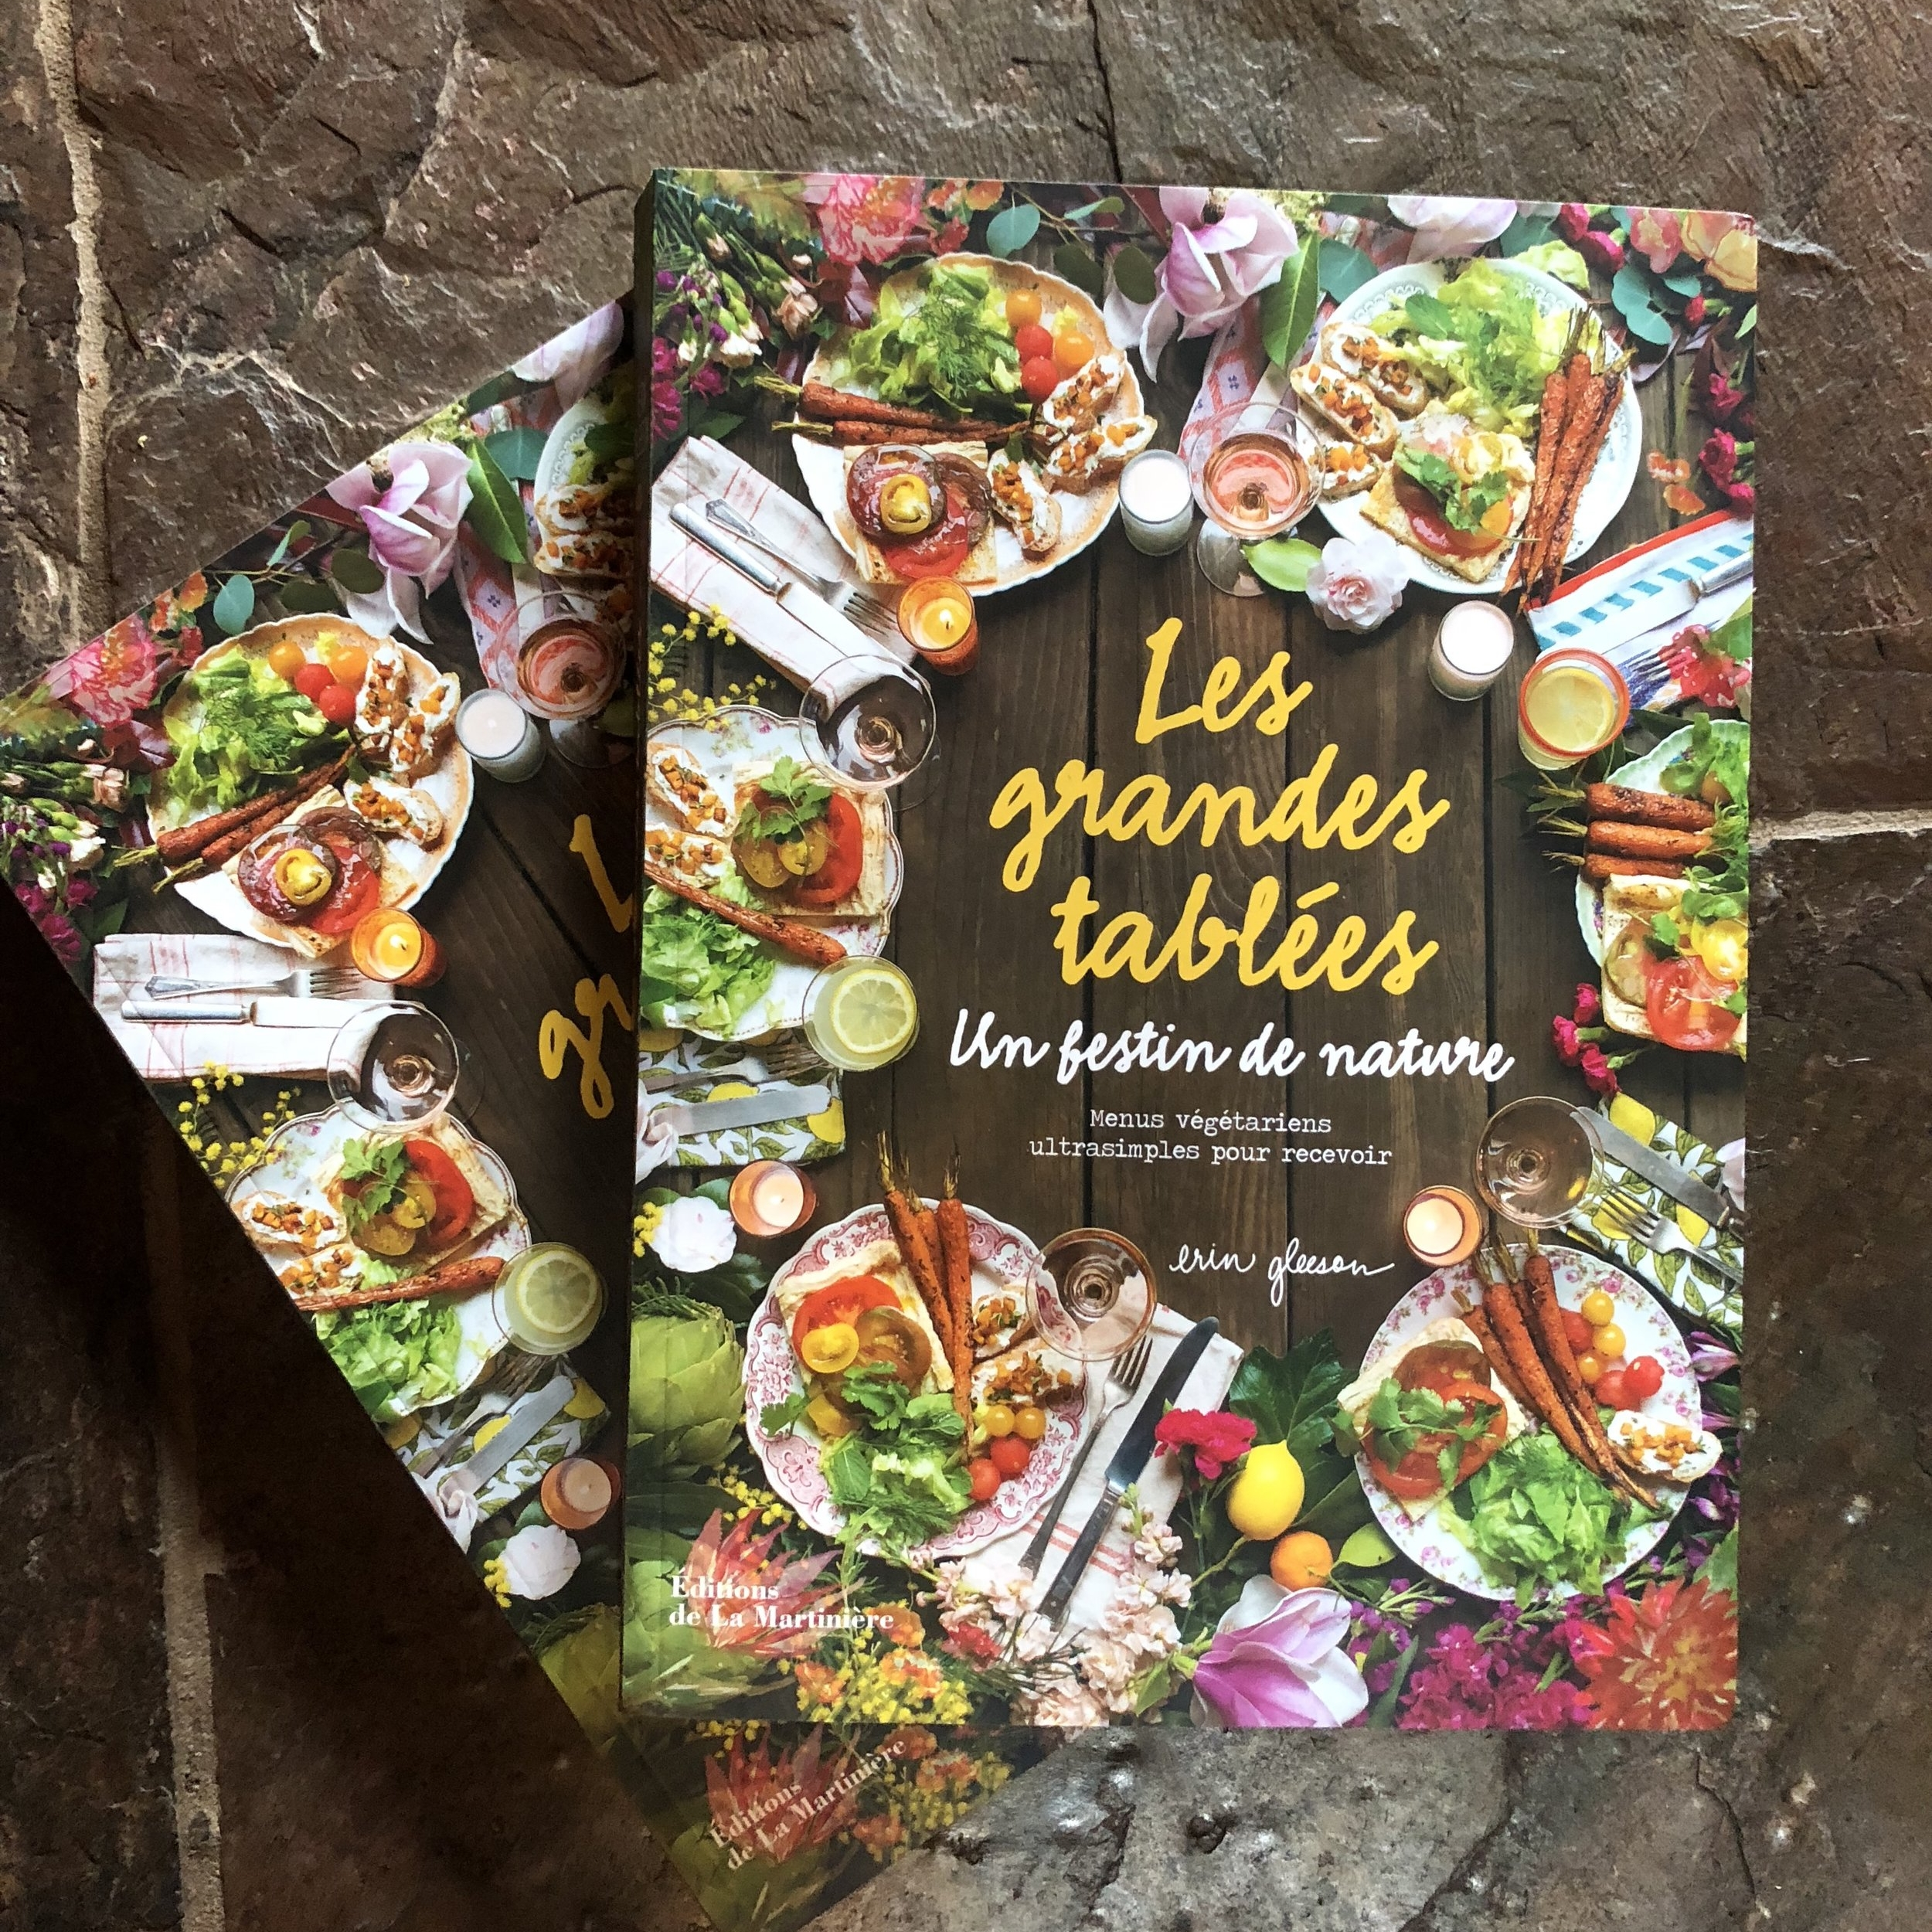 *Just yesterday* a copy of The Forest Feast Gatherings in French arrived, so excited to see it!